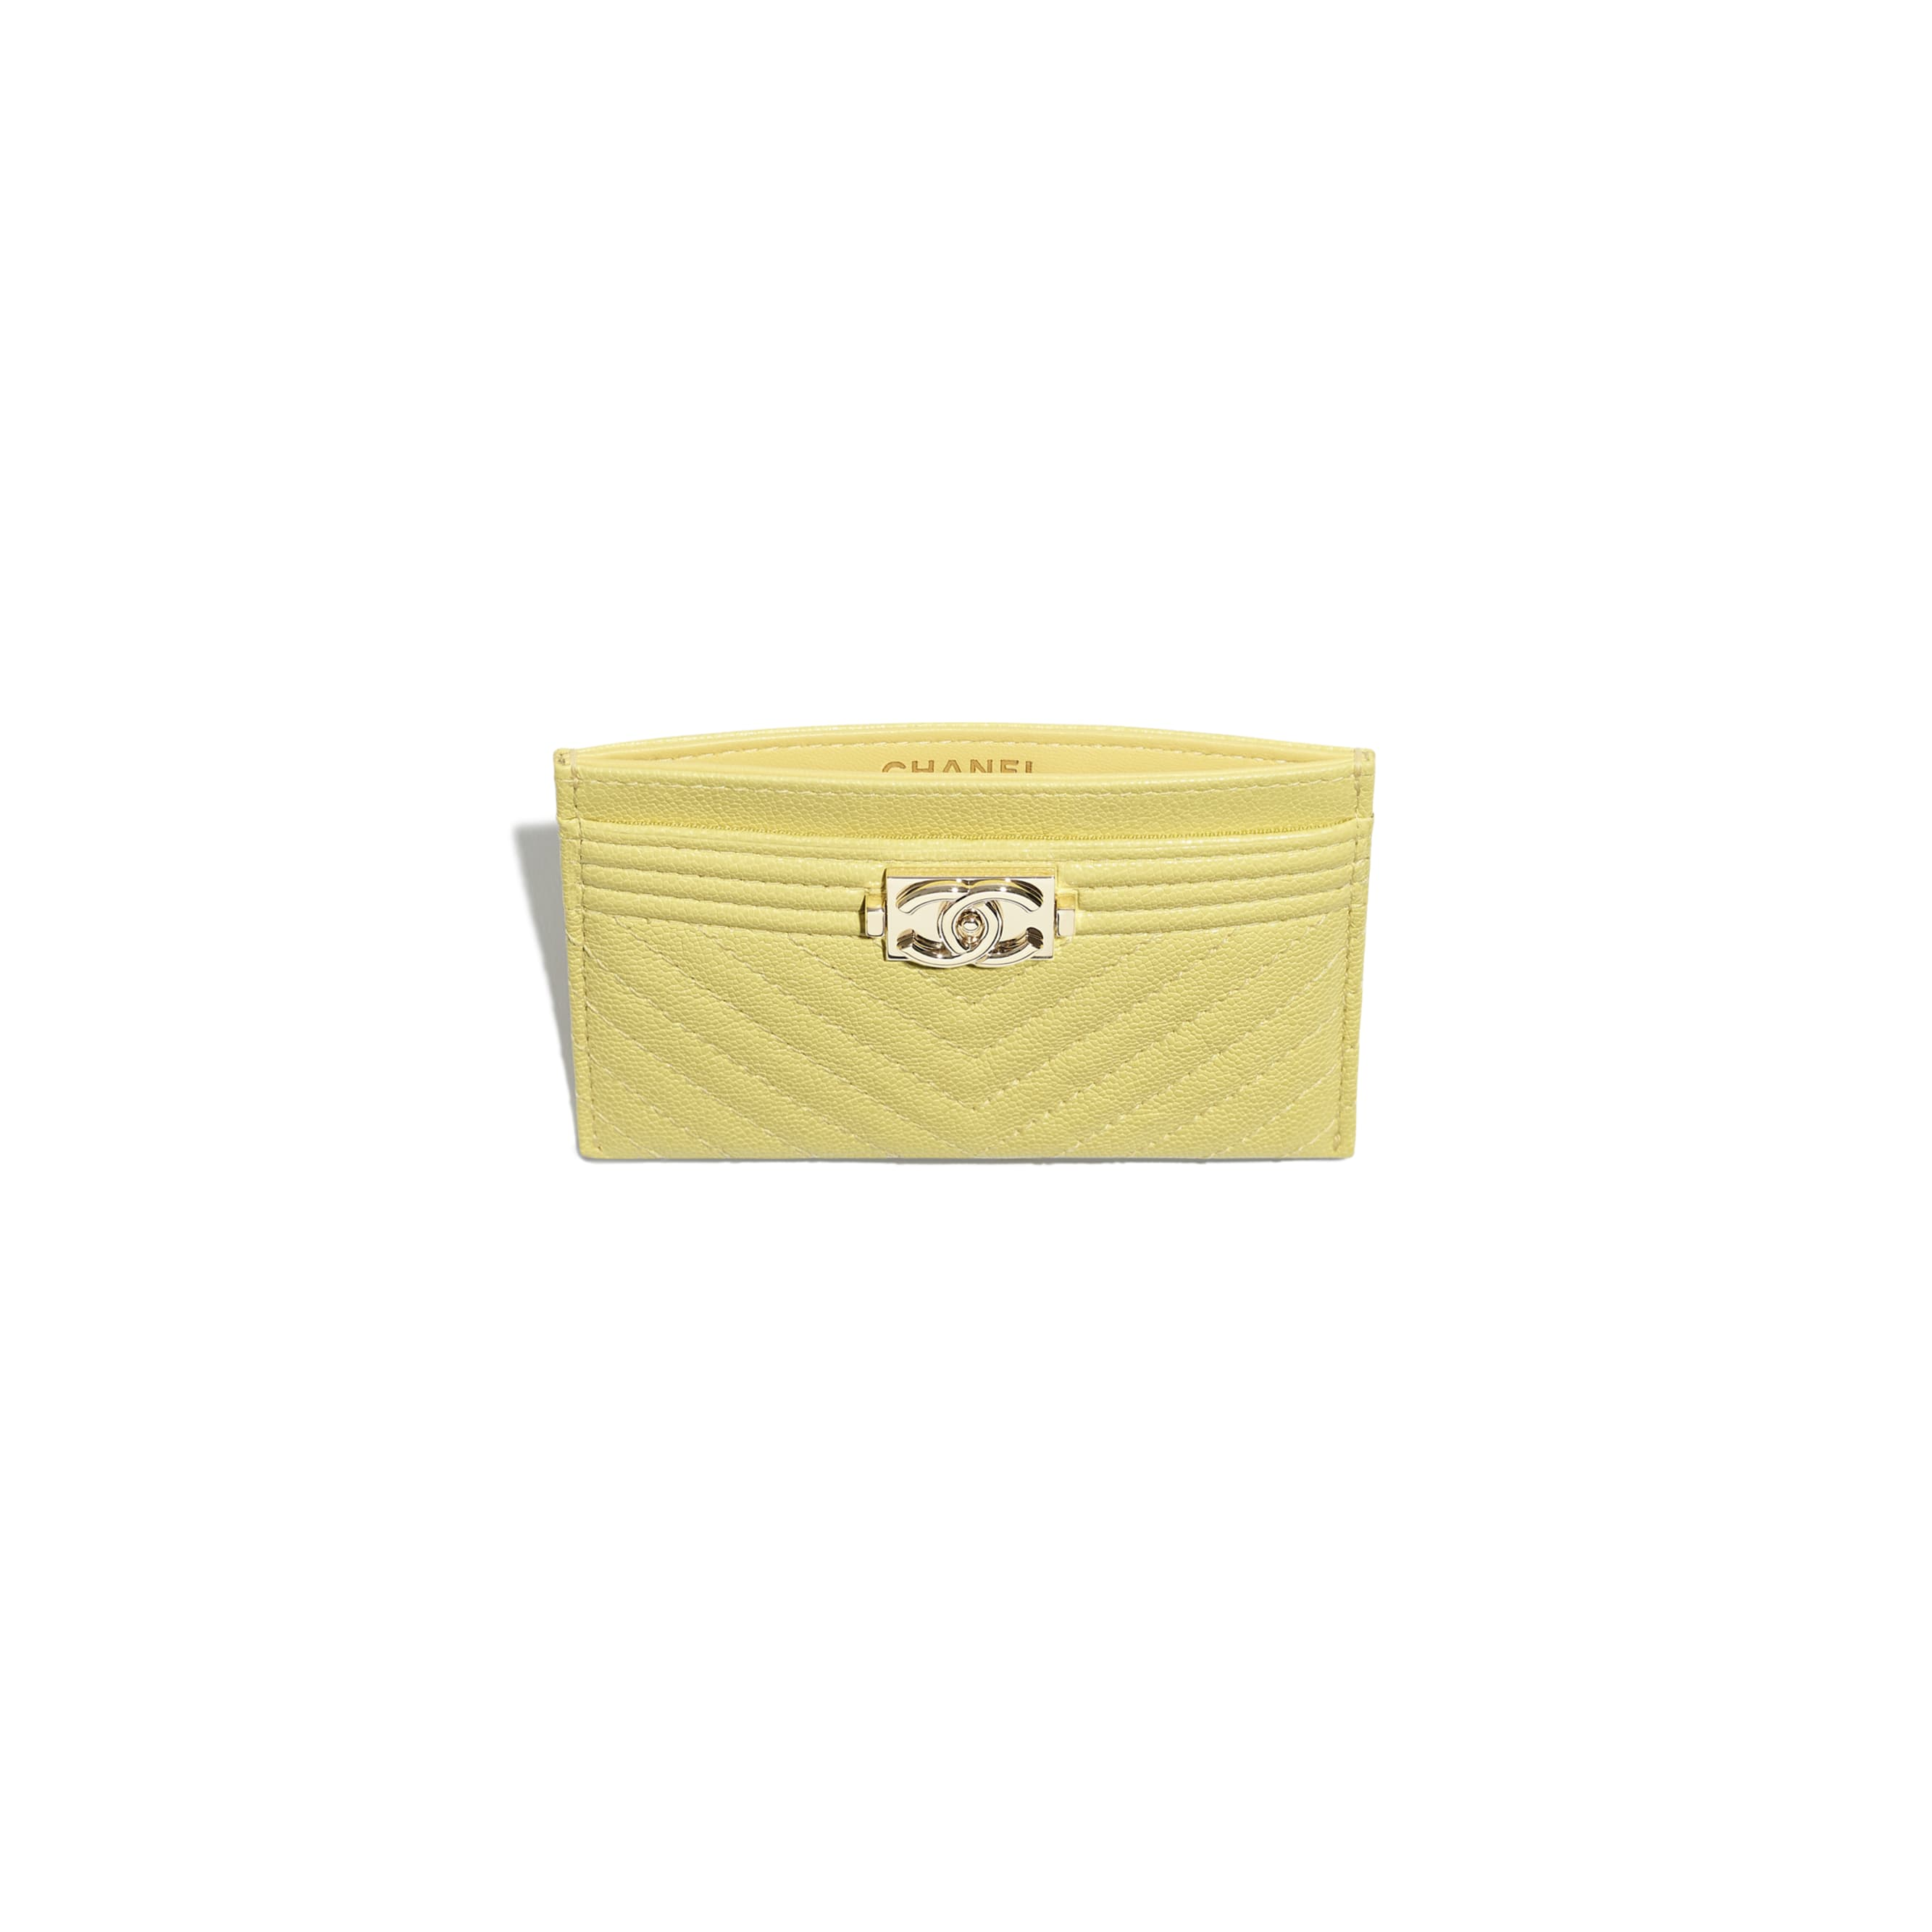 BOY CHANEL Card Holder - Yellow - Grained Calfskin & Gold-Tone Metal - CHANEL - Other view - see standard sized version